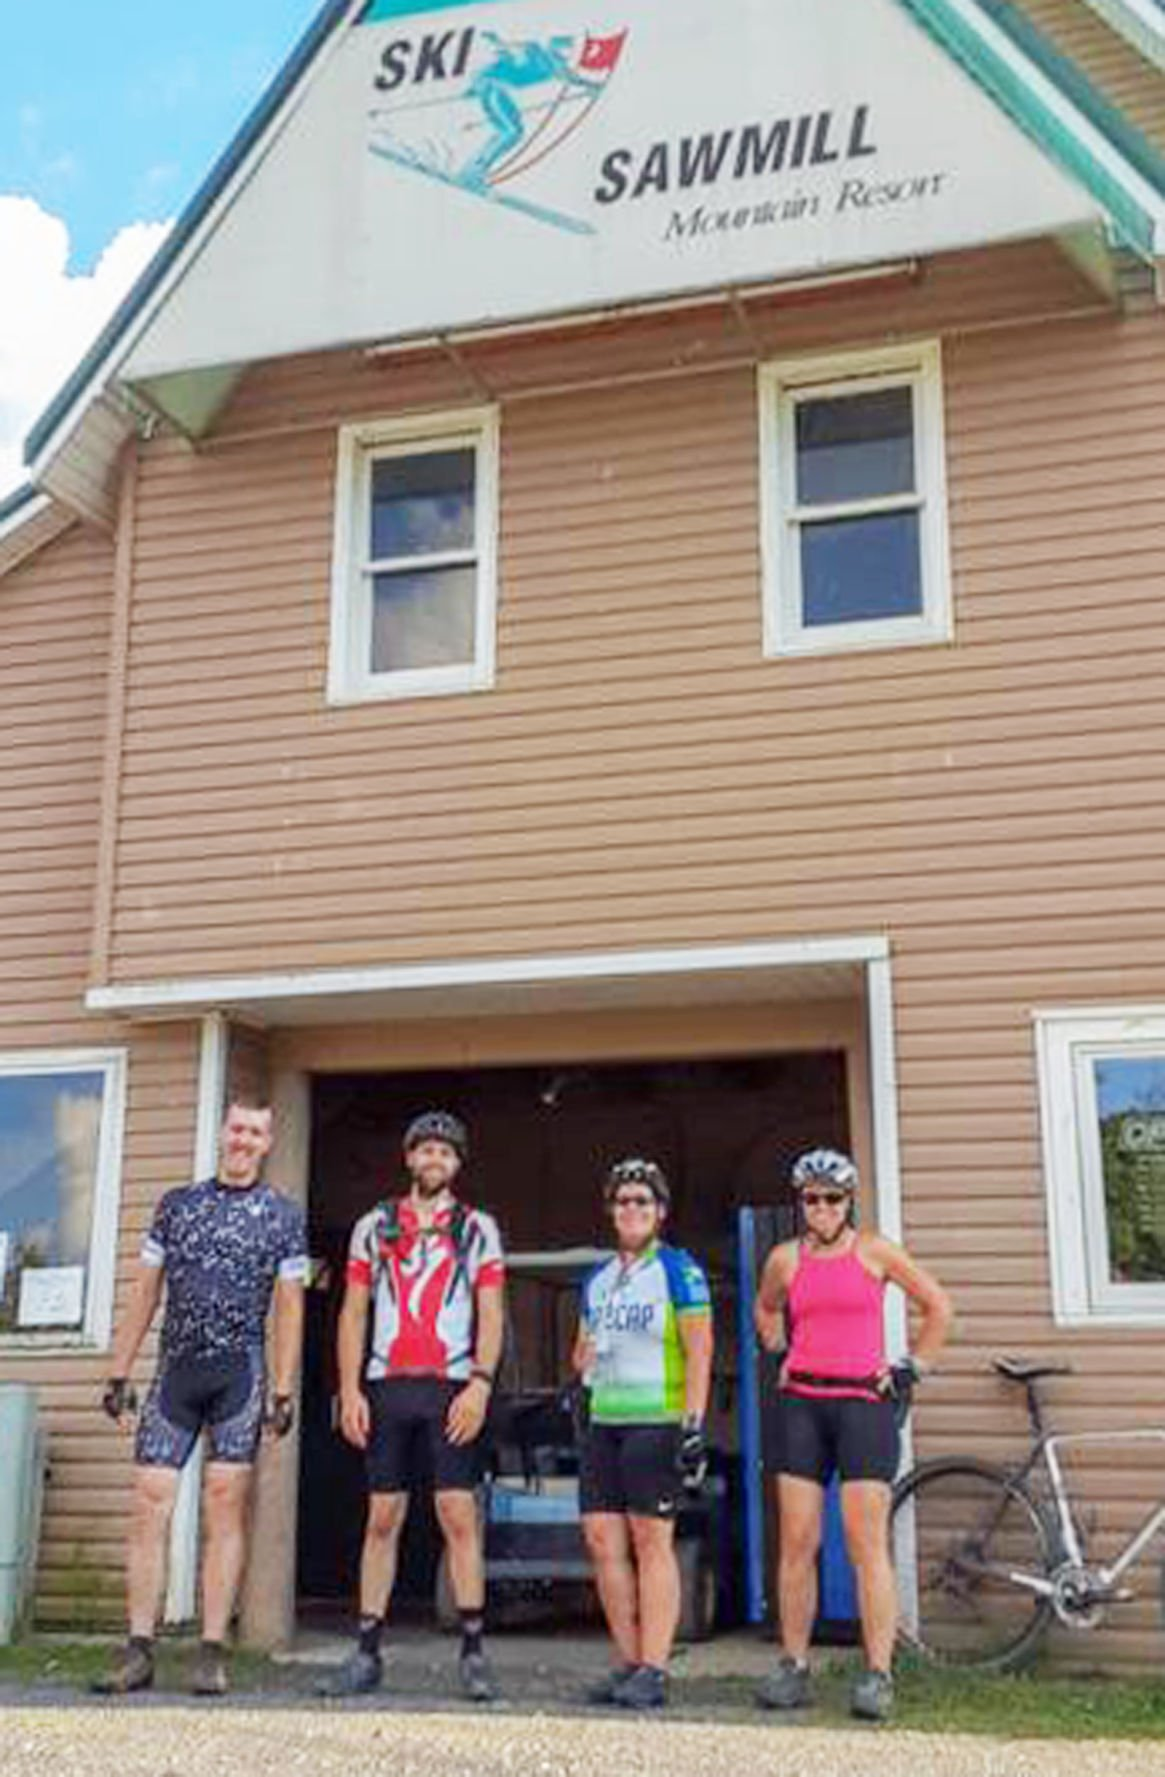 Bicyclists pose for photo outside of Ski Sawmill